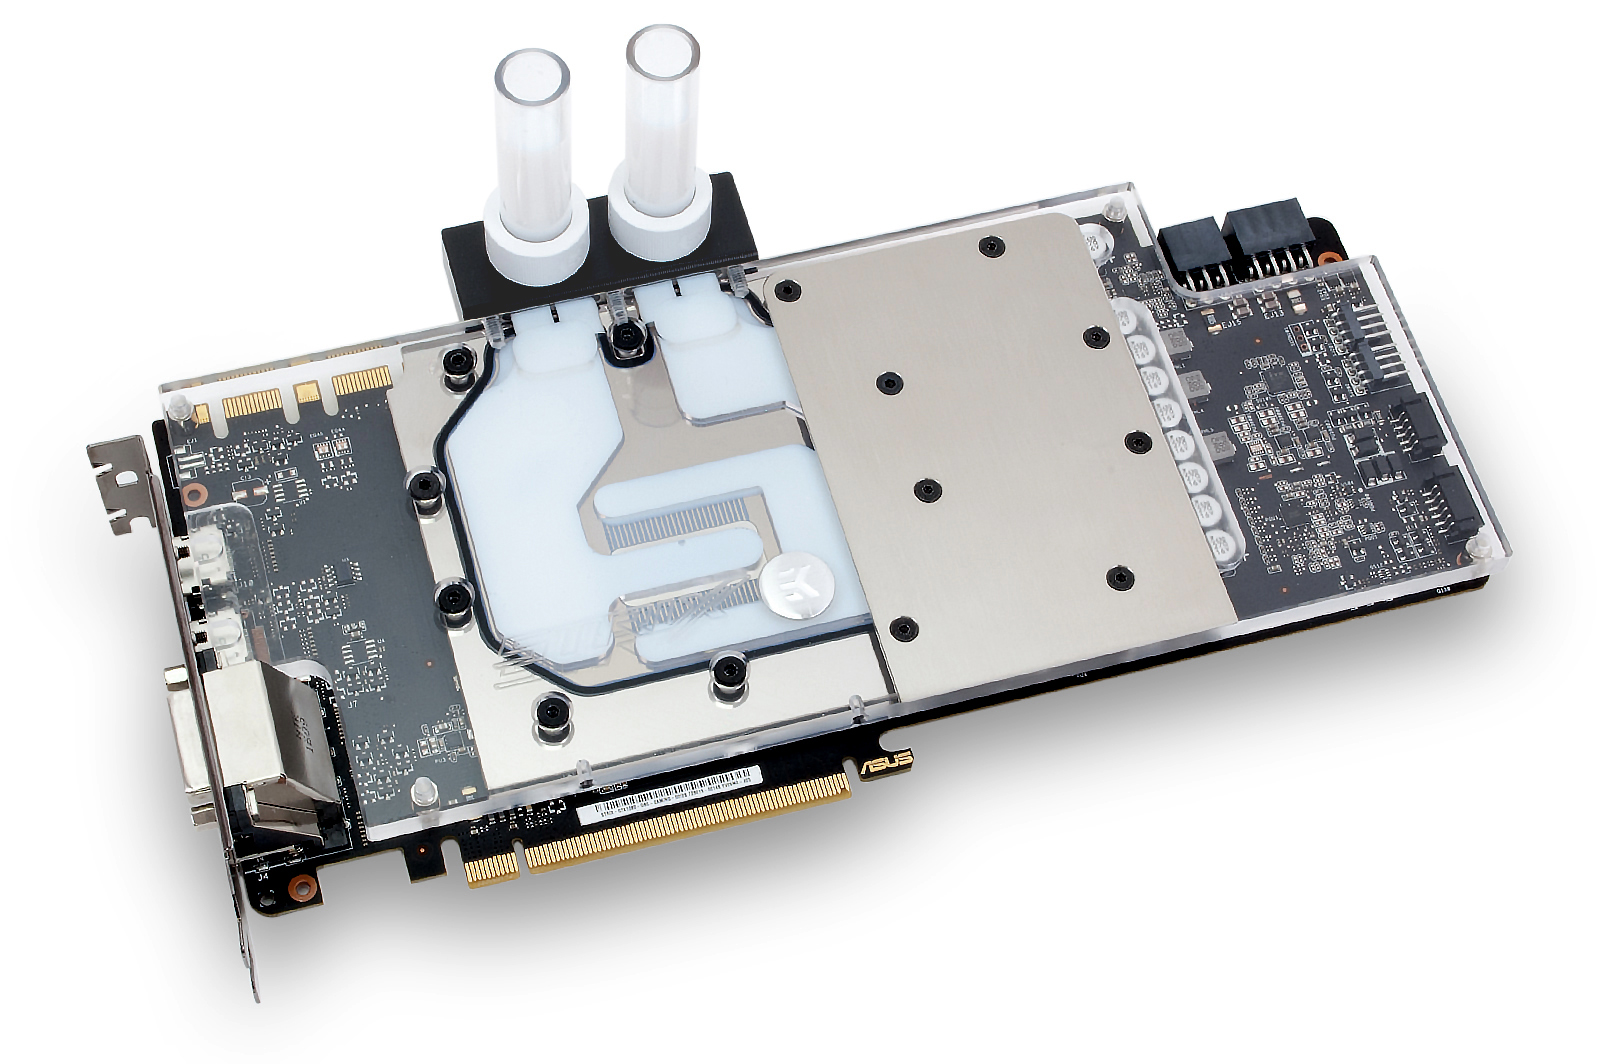 EK releases their custom GTX 1080 Gaming Strix Water block